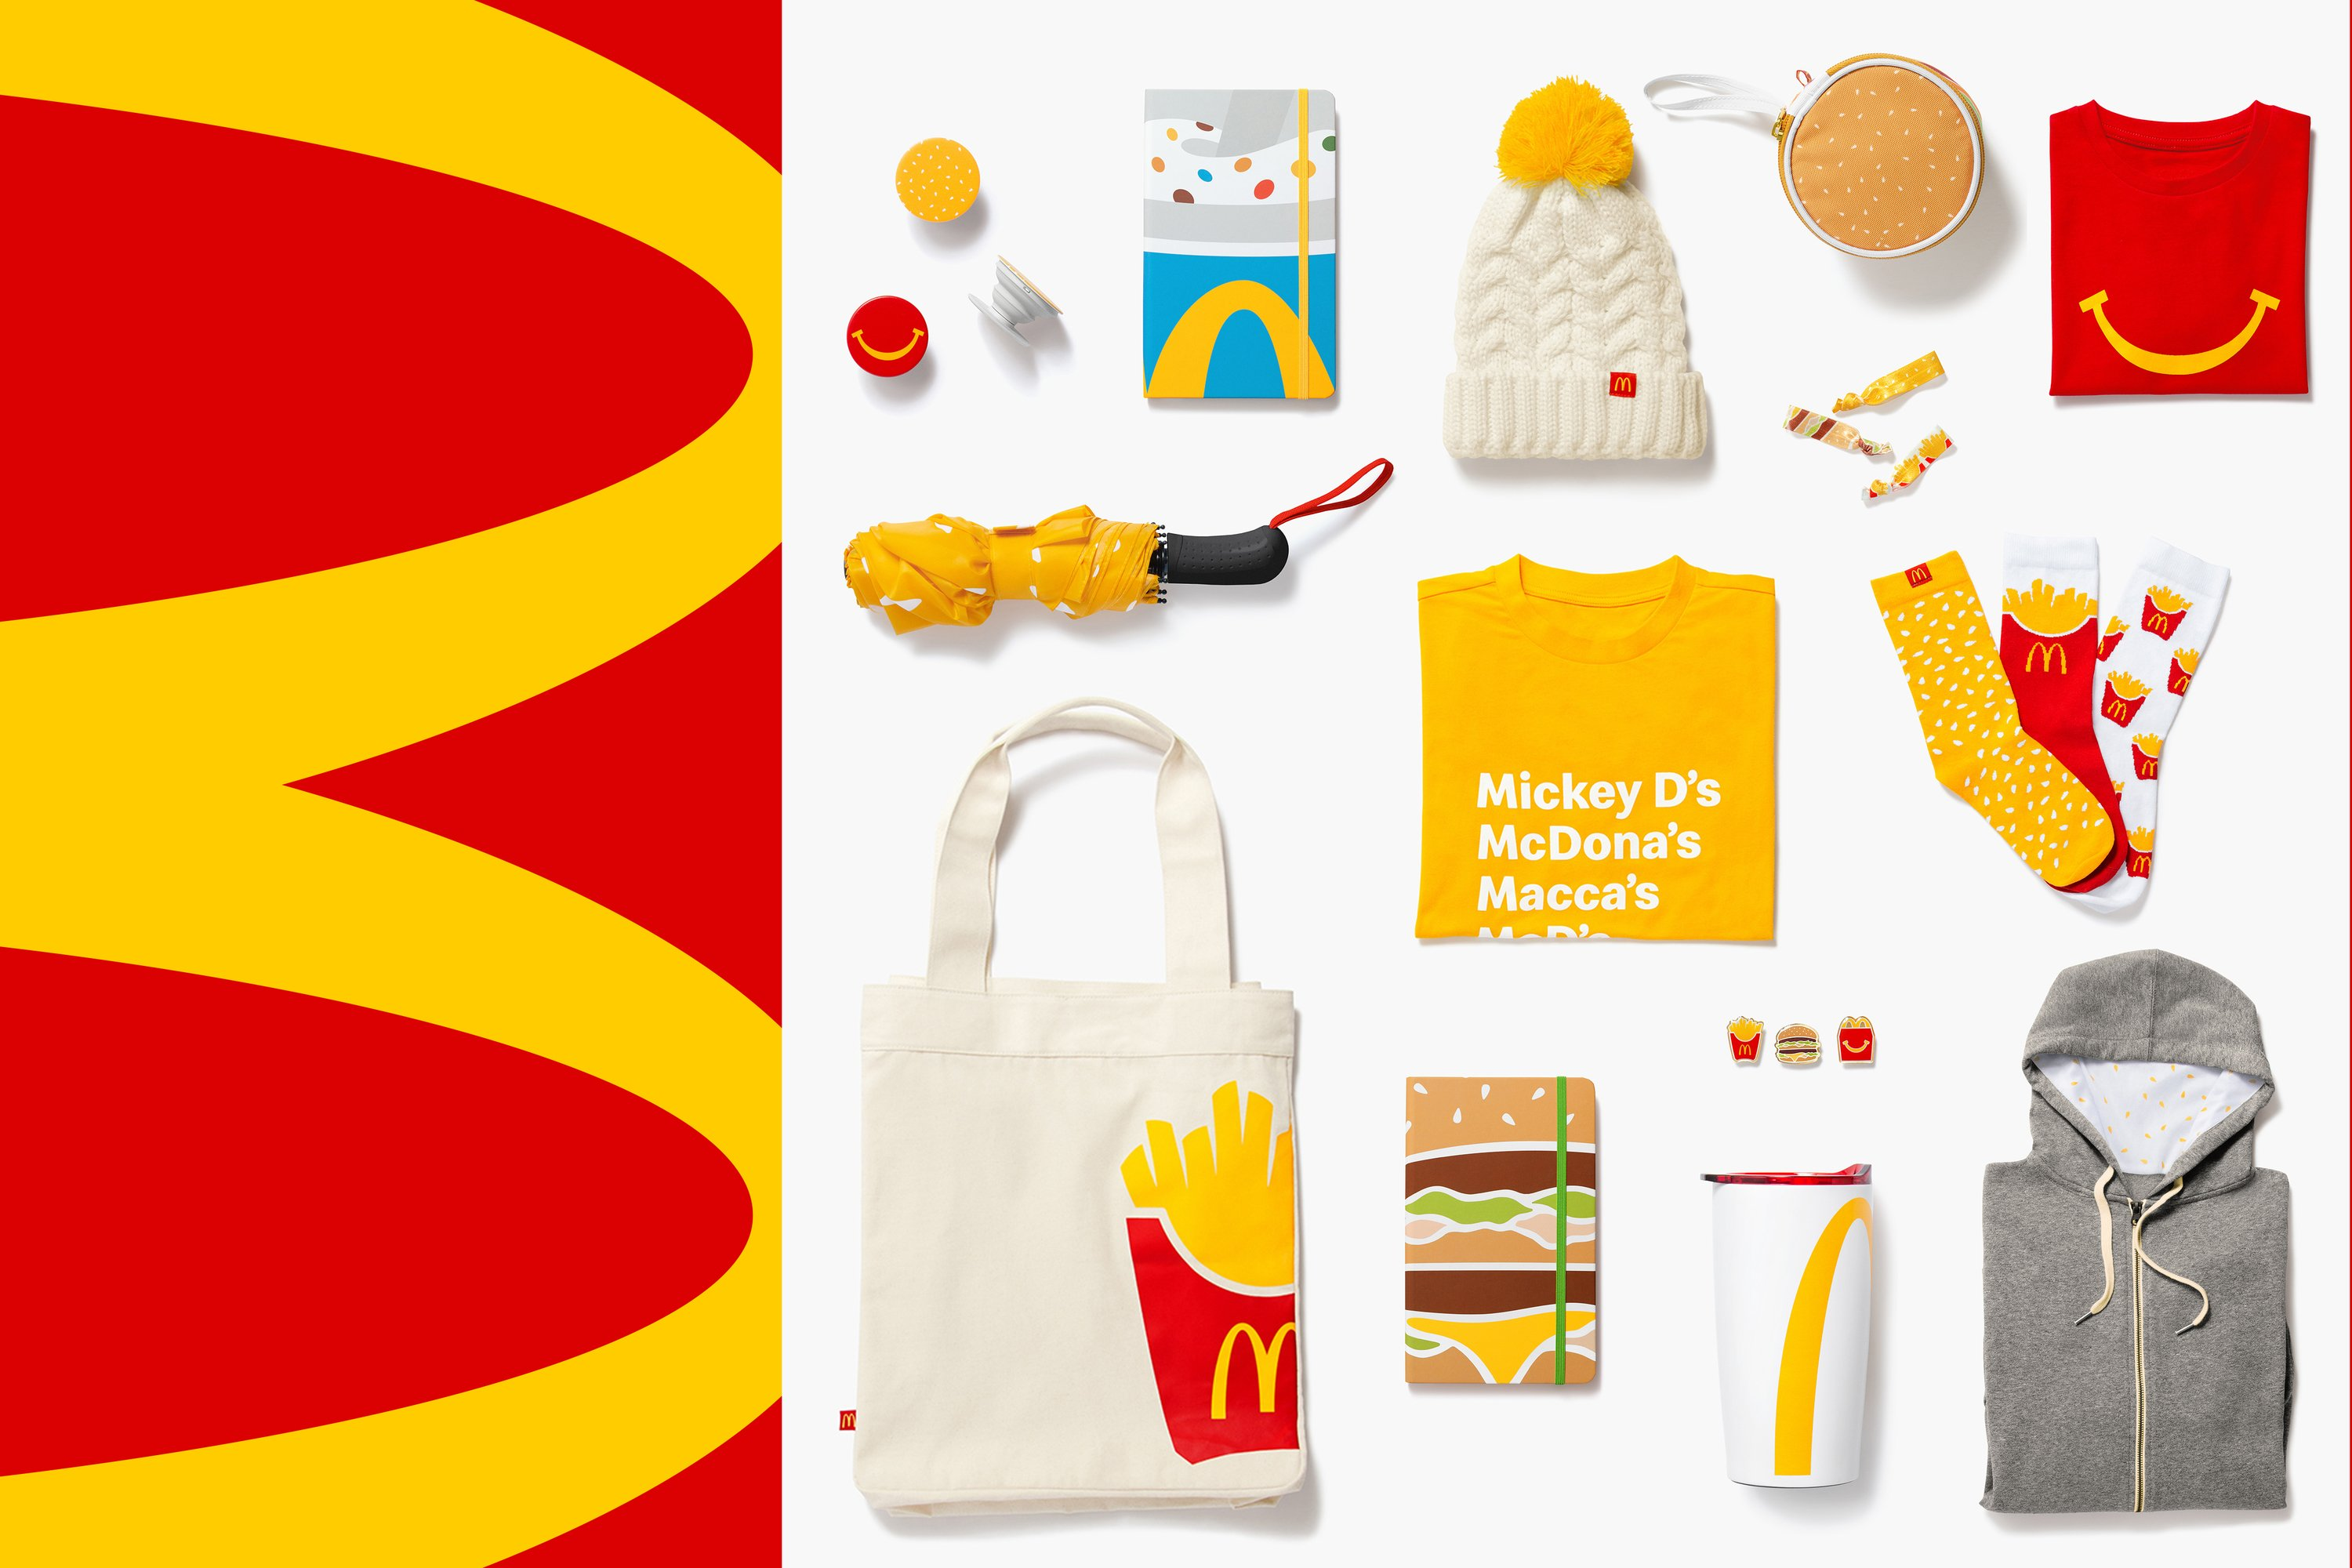 McDonald's is selling merchandise made for its biggest fans, just in time for the holidays